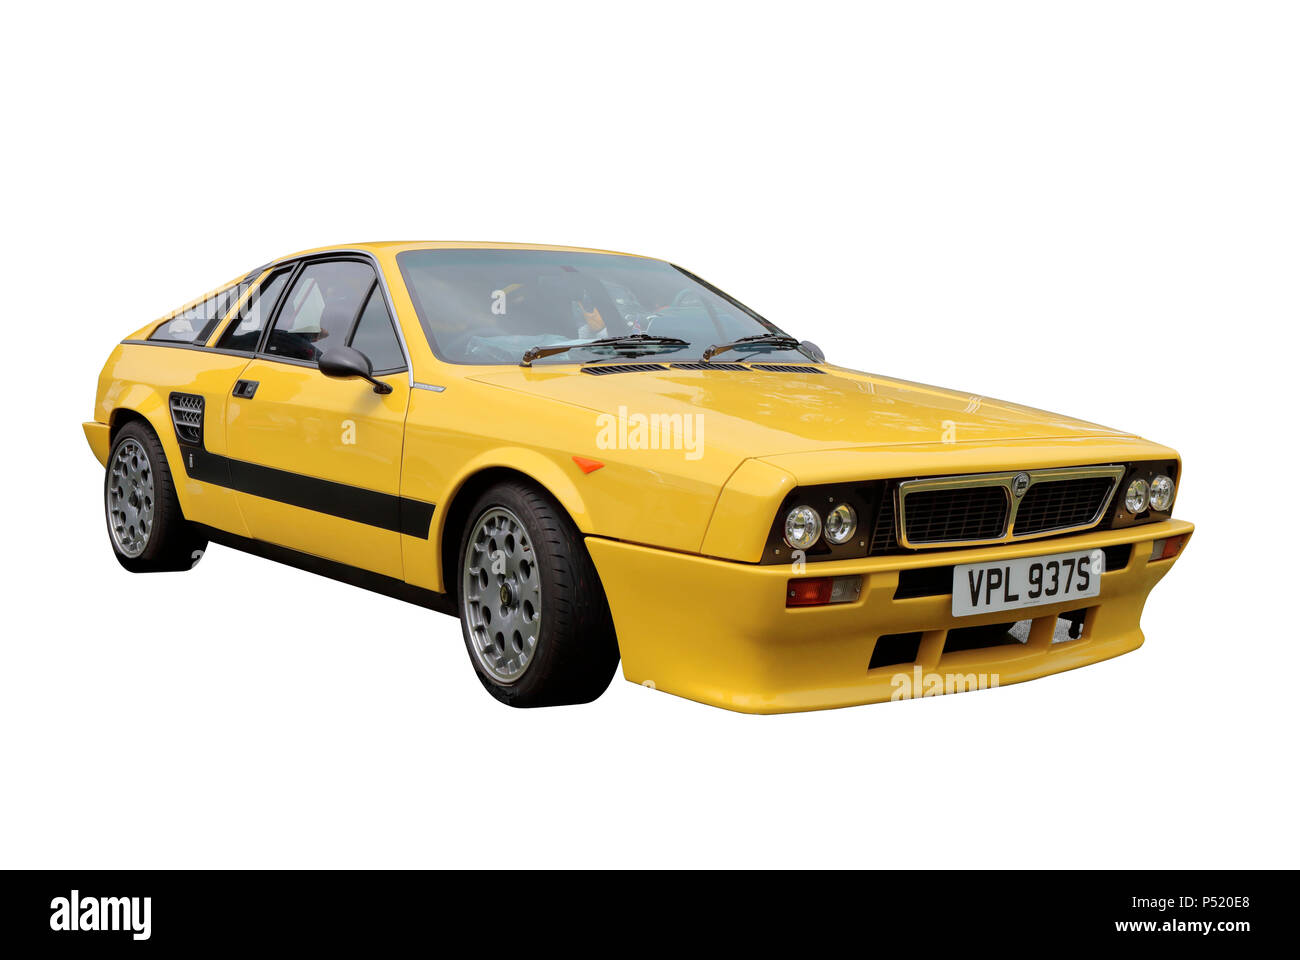 1978 Lancia β Monte Carlo isolated on a white background - Stock Image